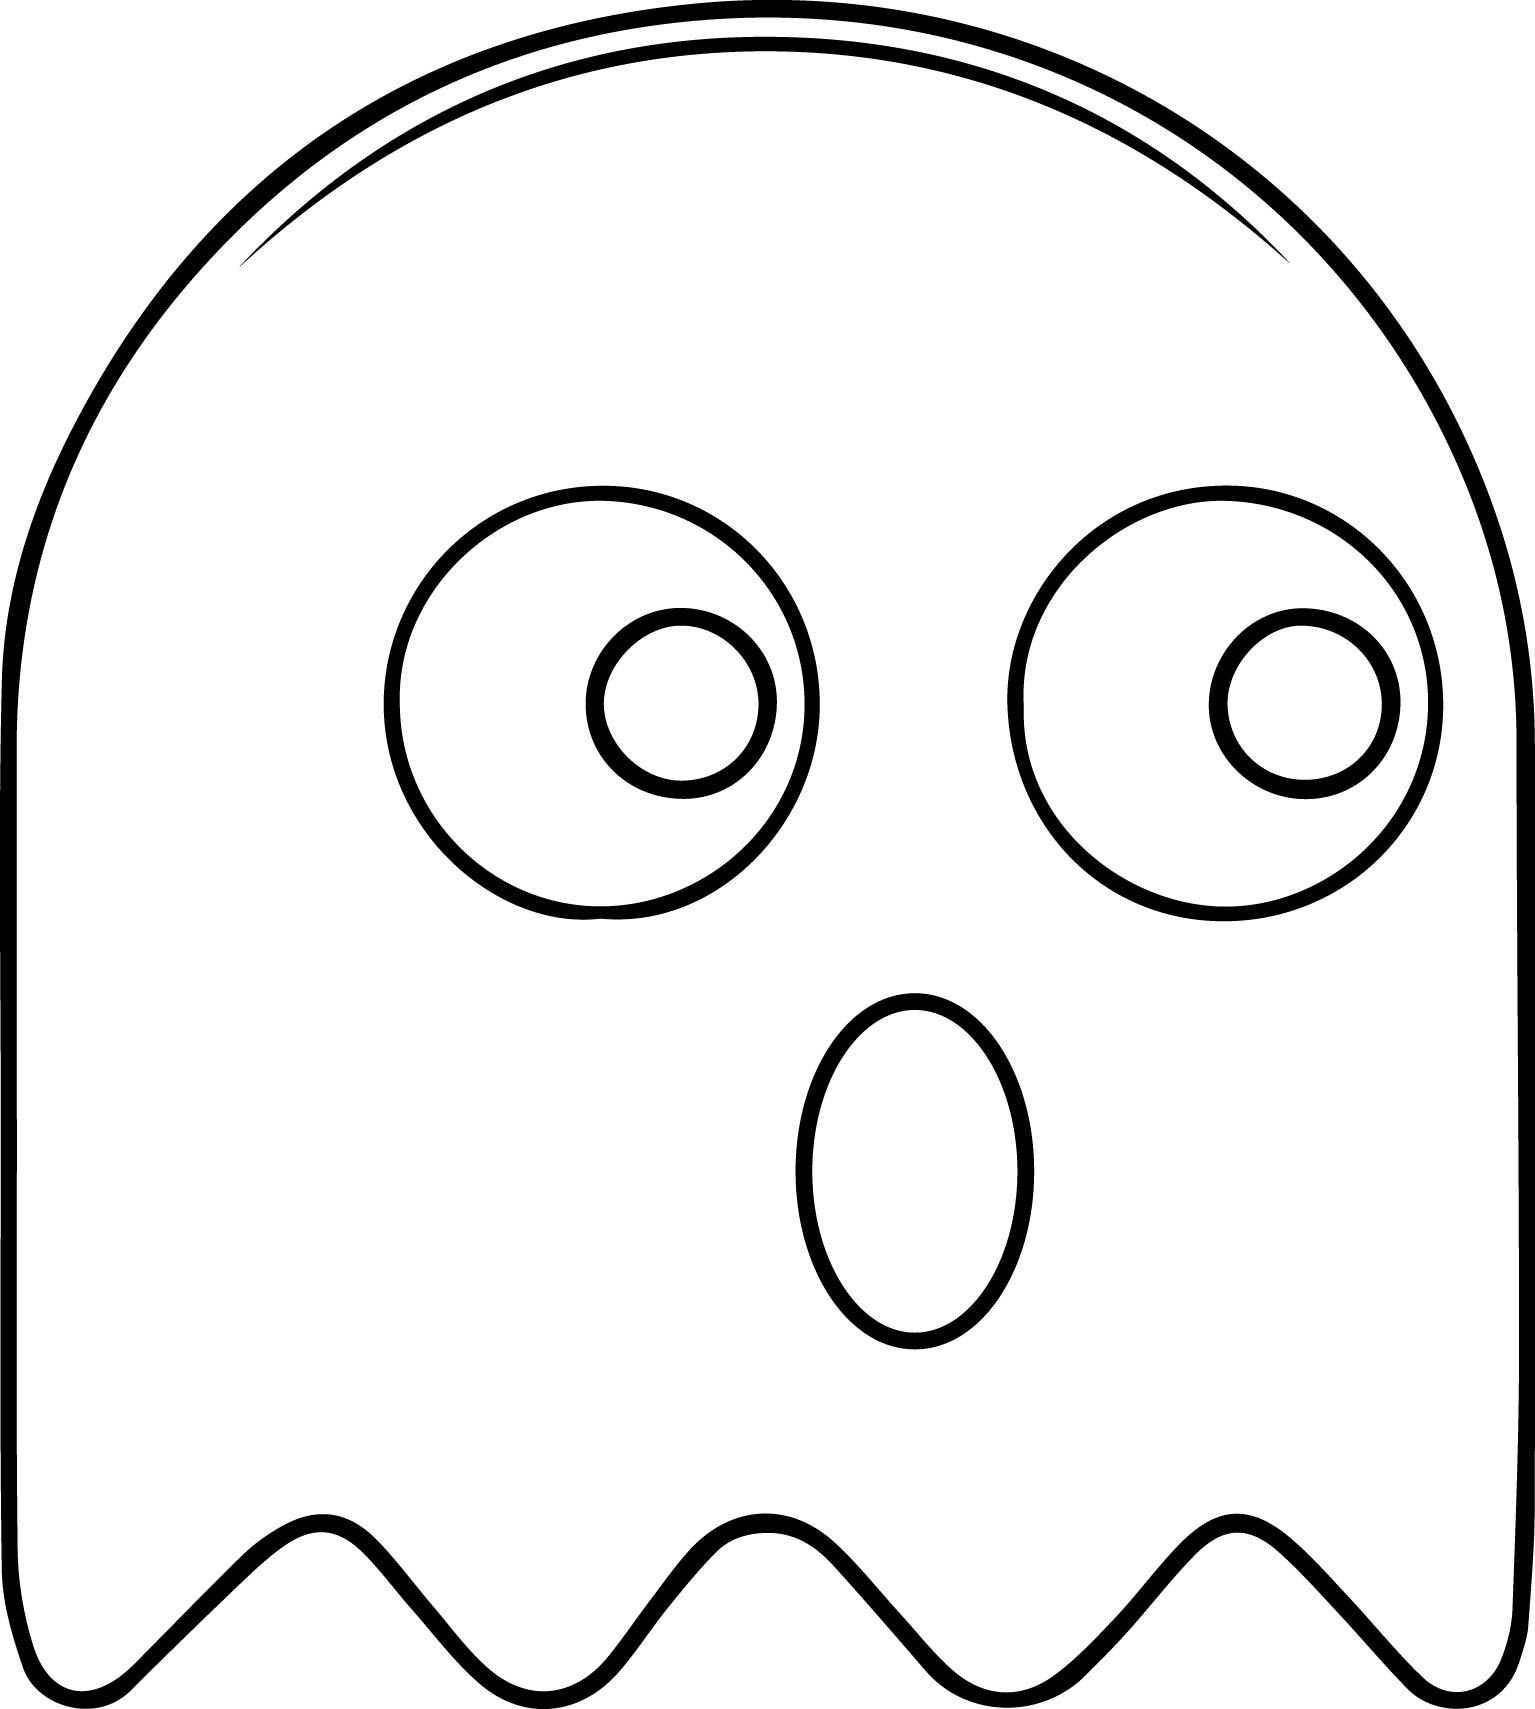 pacman coloring page wecoloringpage 140 - Pac Man Characters Coloring Pages